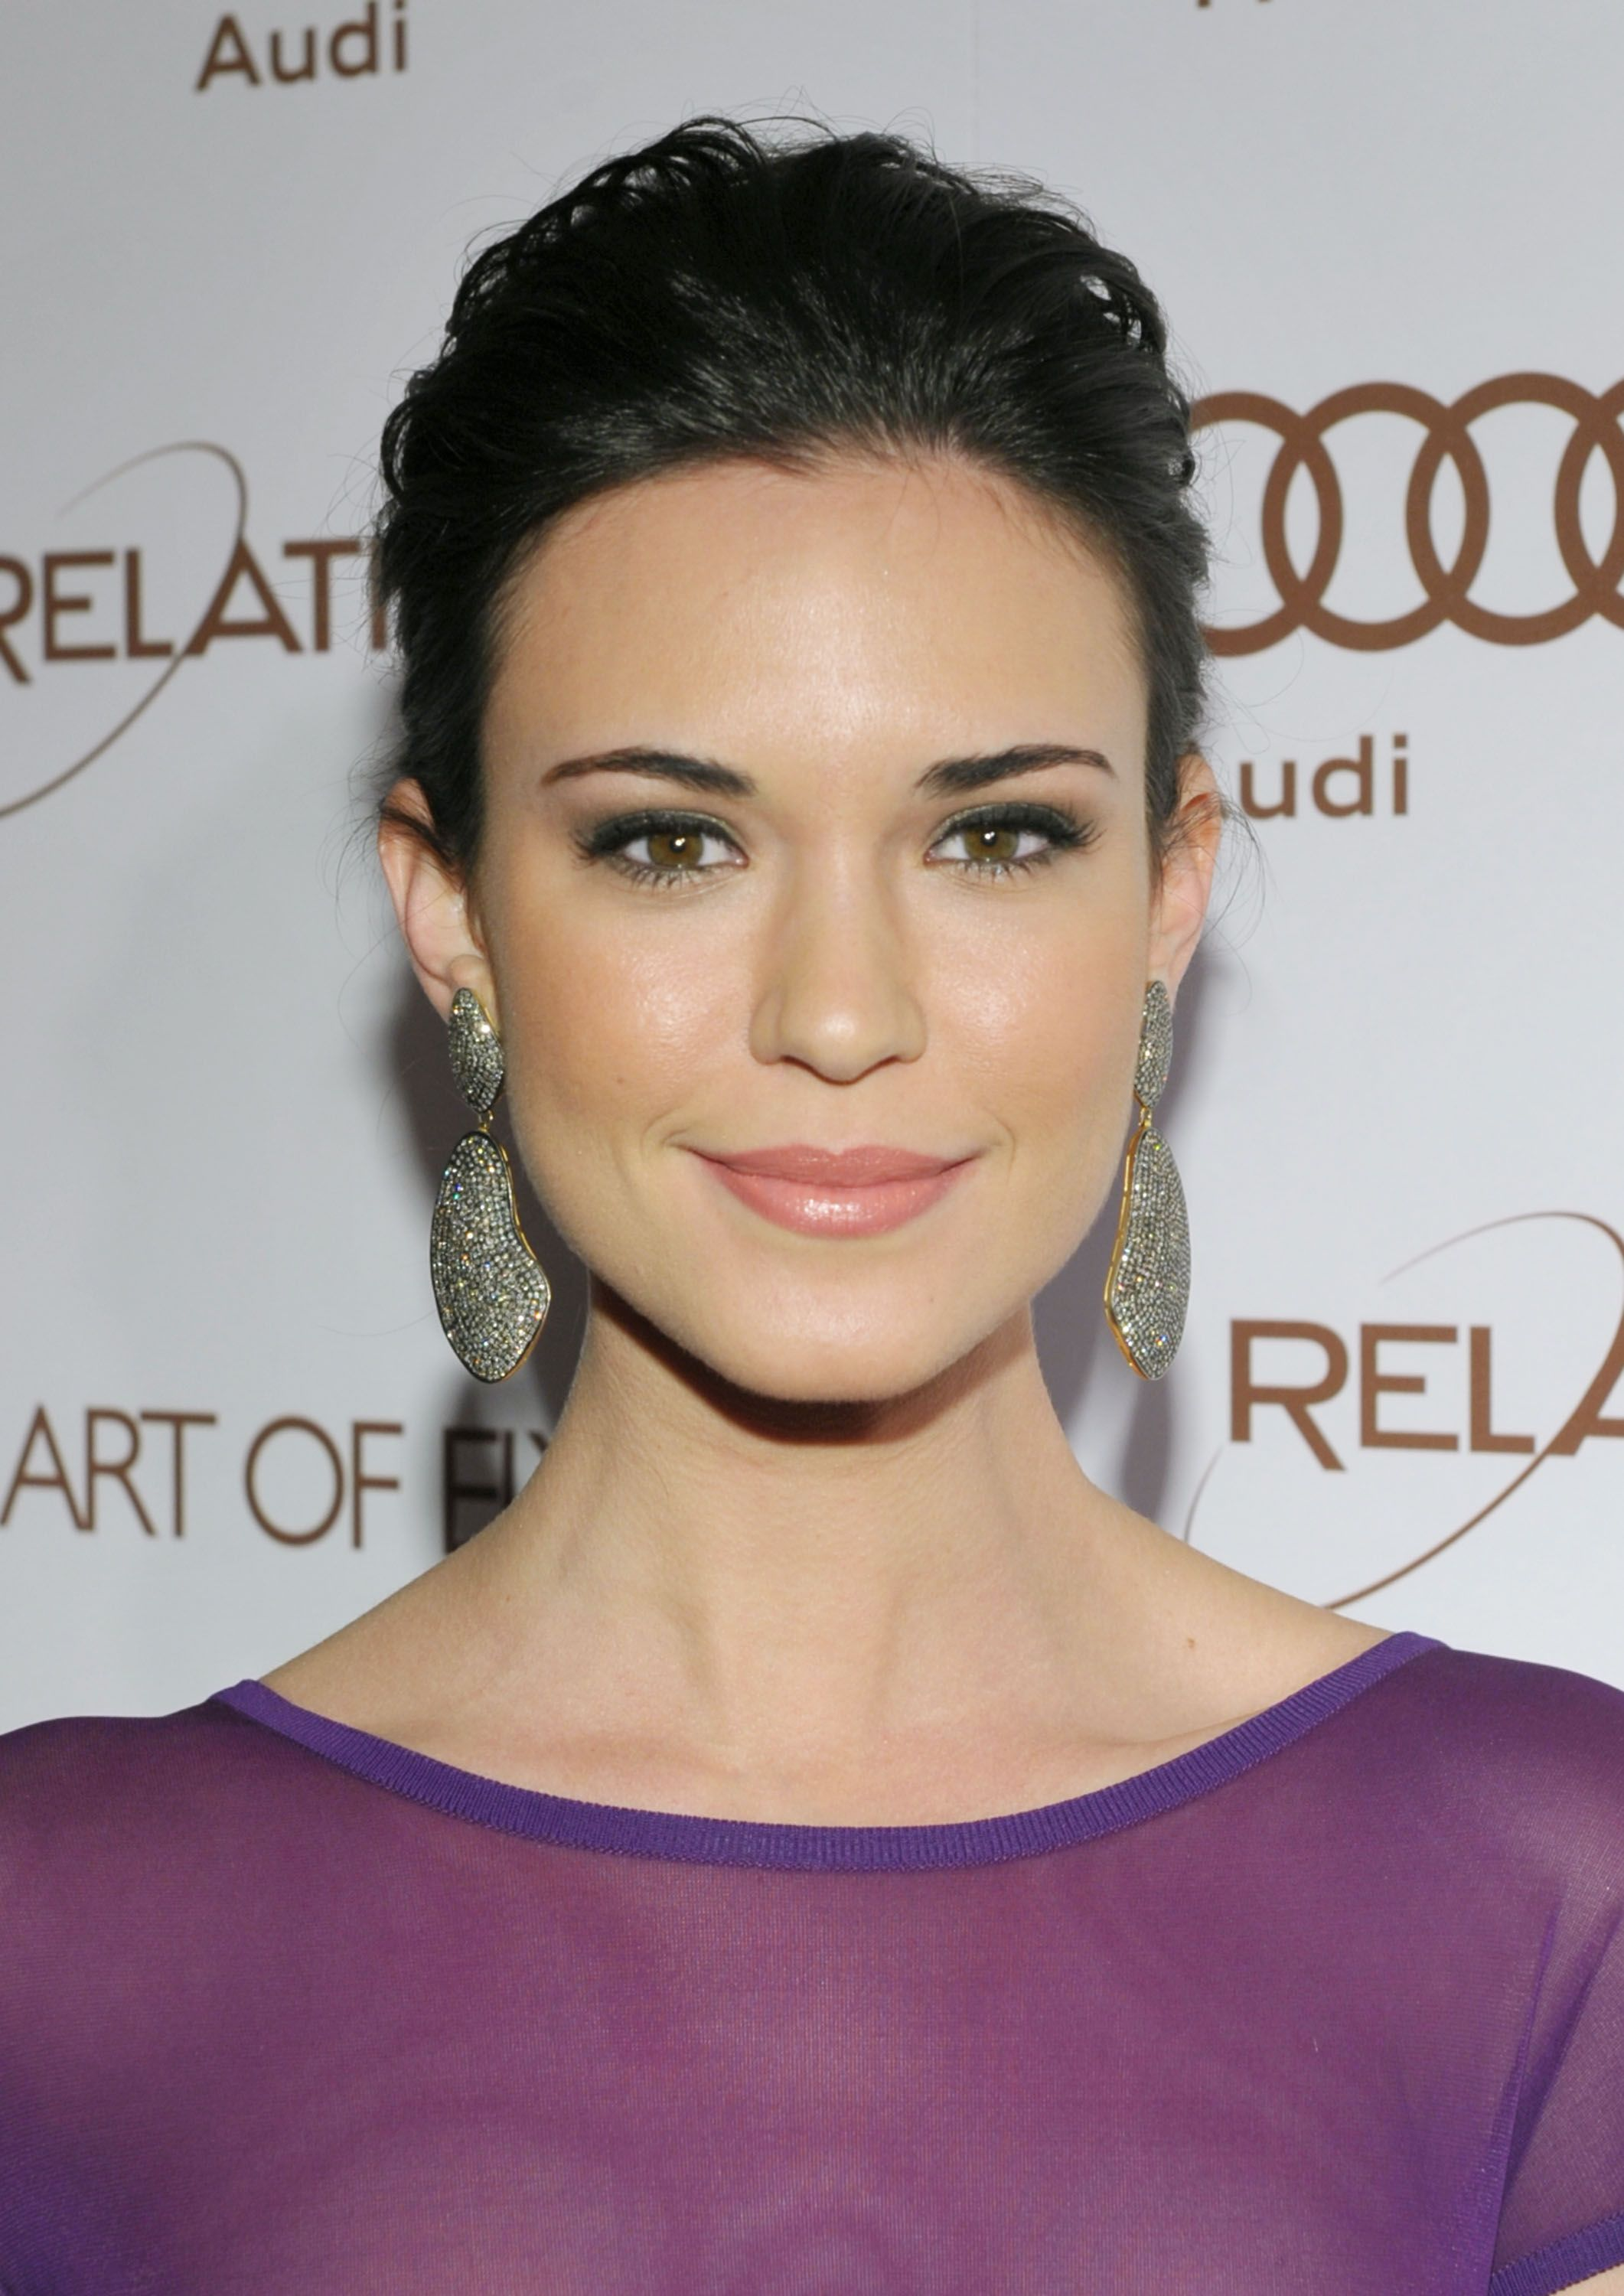 Odette Annable Celebrities Odette annable, Natural